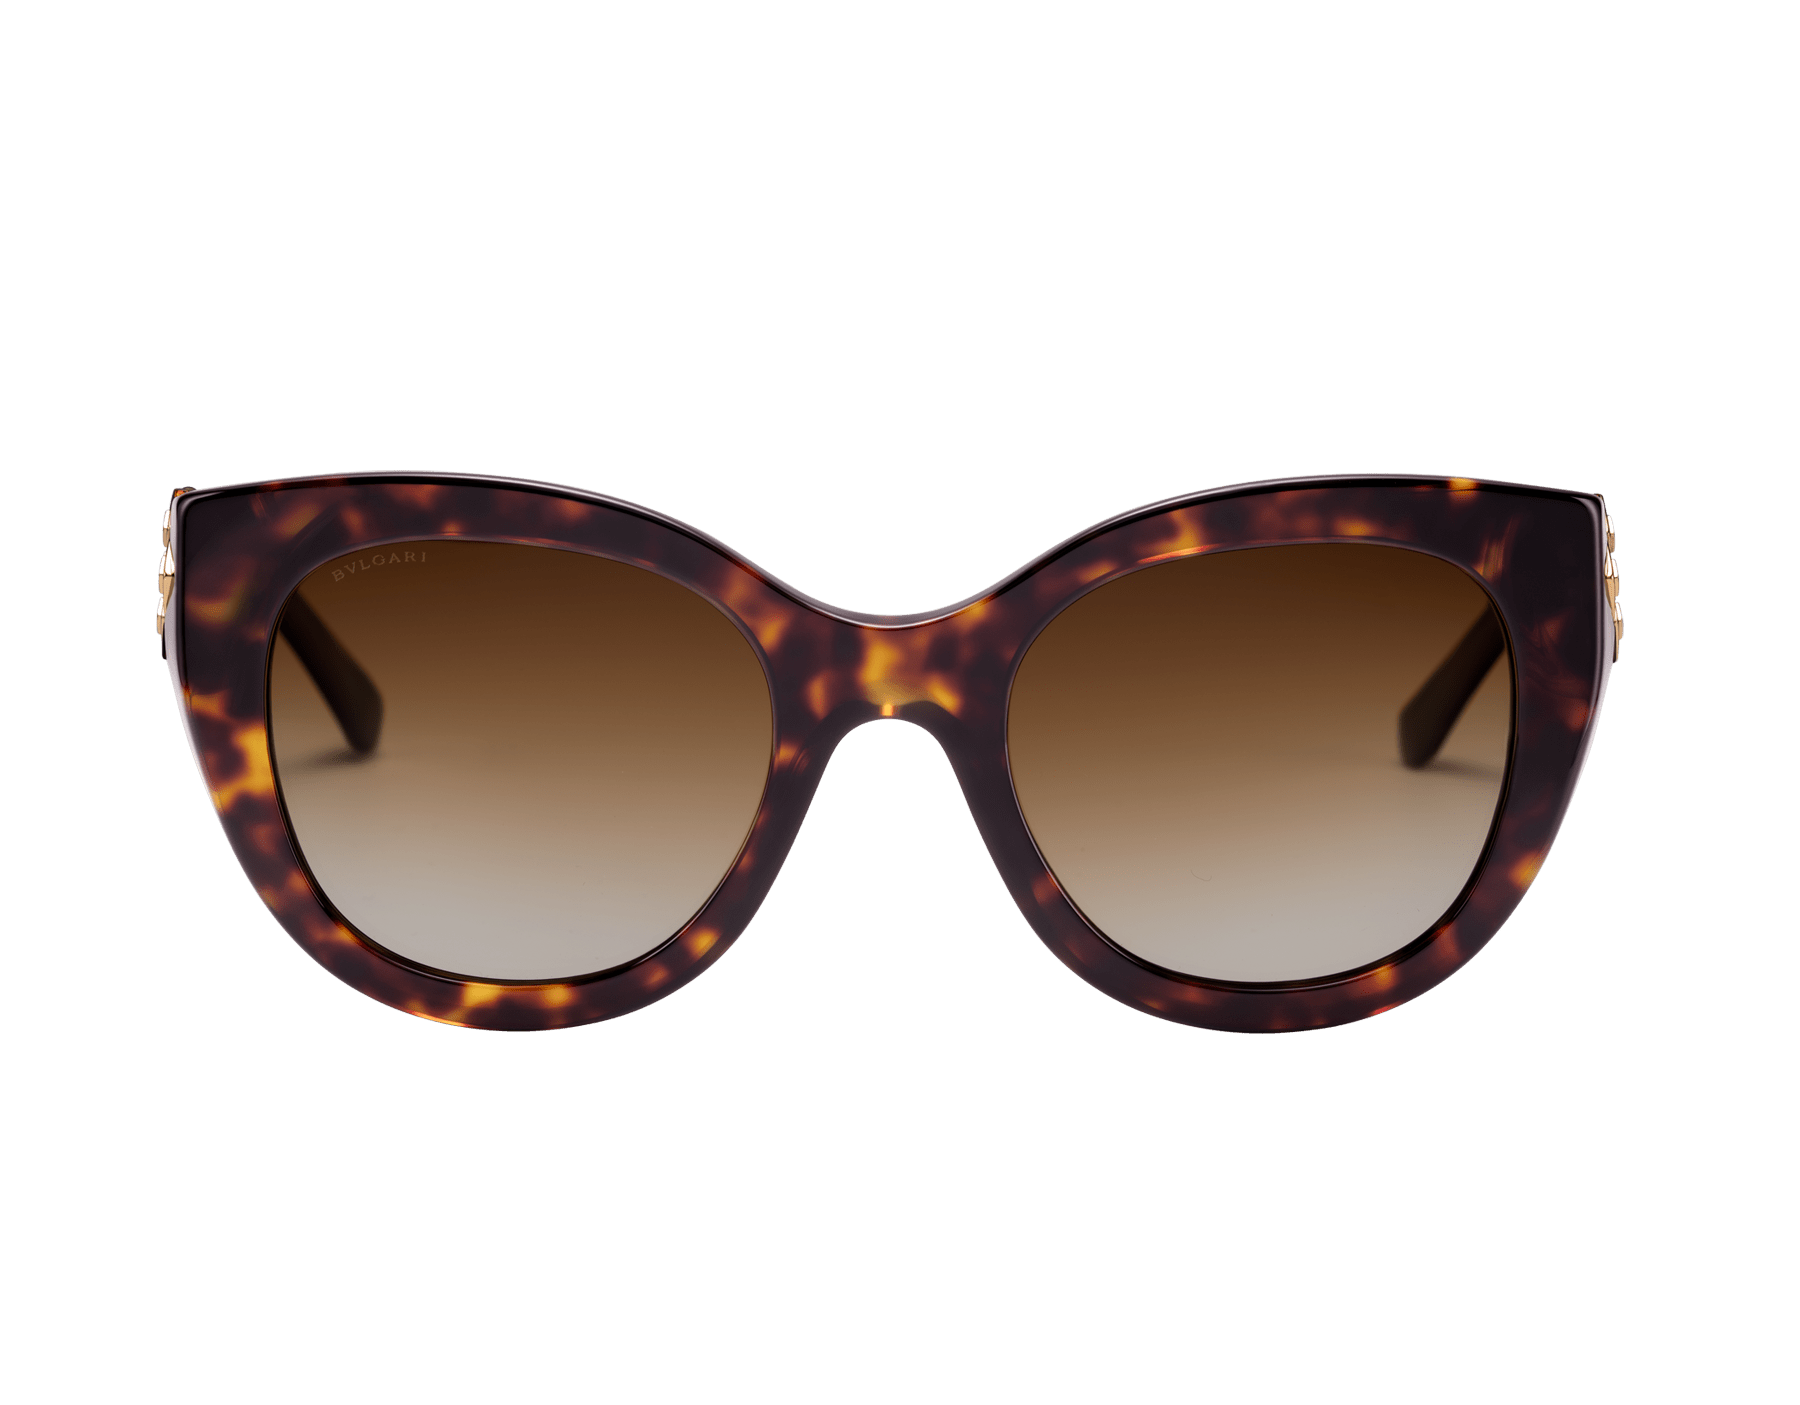 Bvlgari Serpenti squared bold acetate sunglasses with Serpenti metal décor and crystals. 903742 image 2